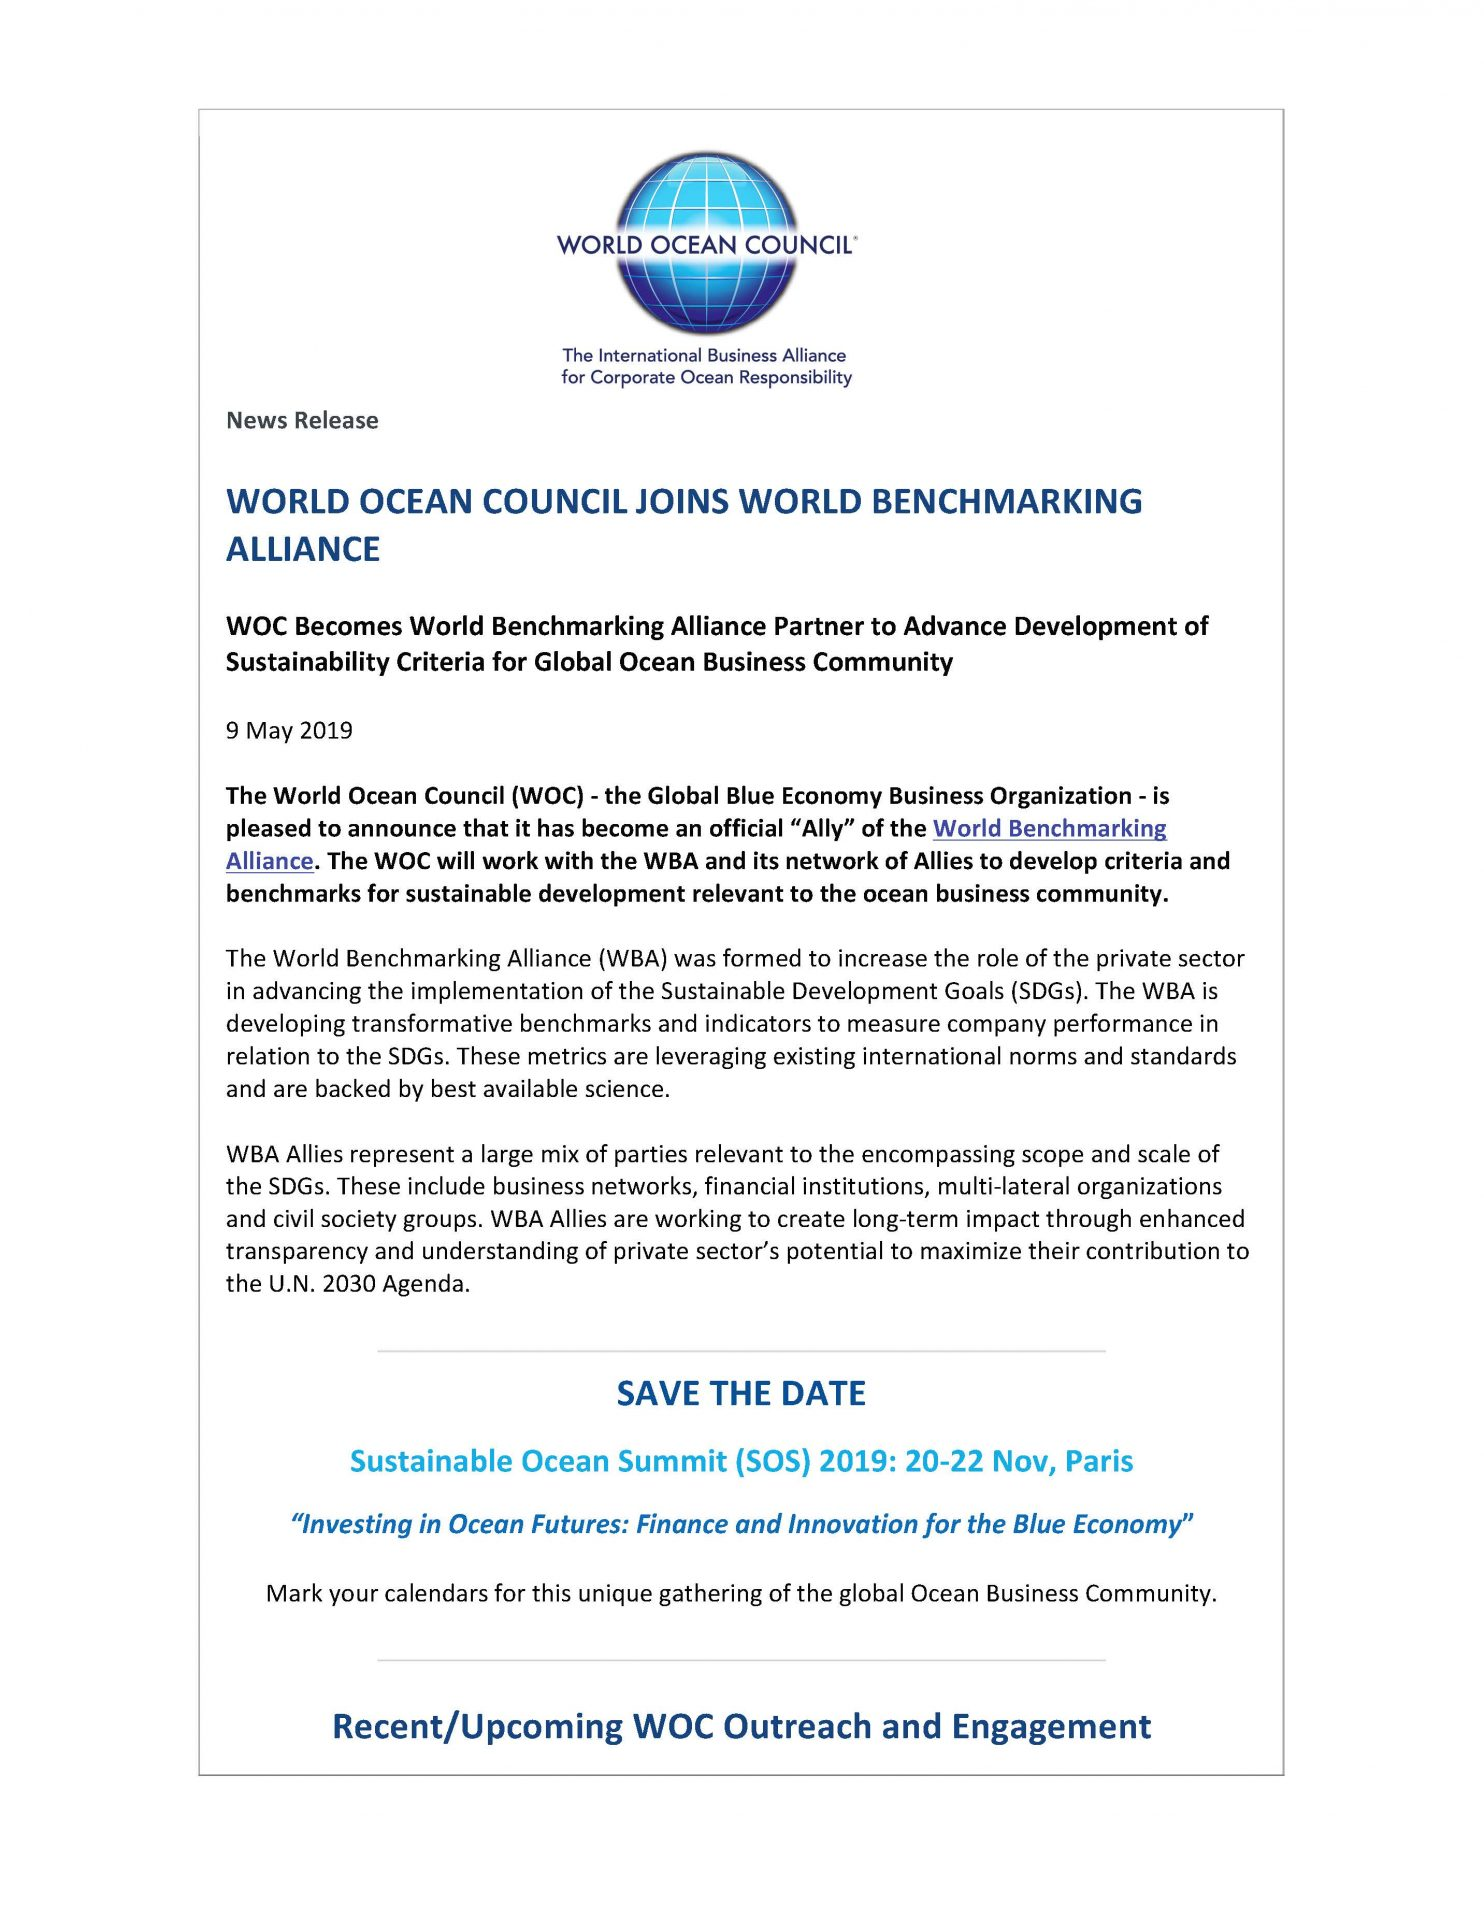 WOC Joins World Benchmarking Alliance - 9 May 2019